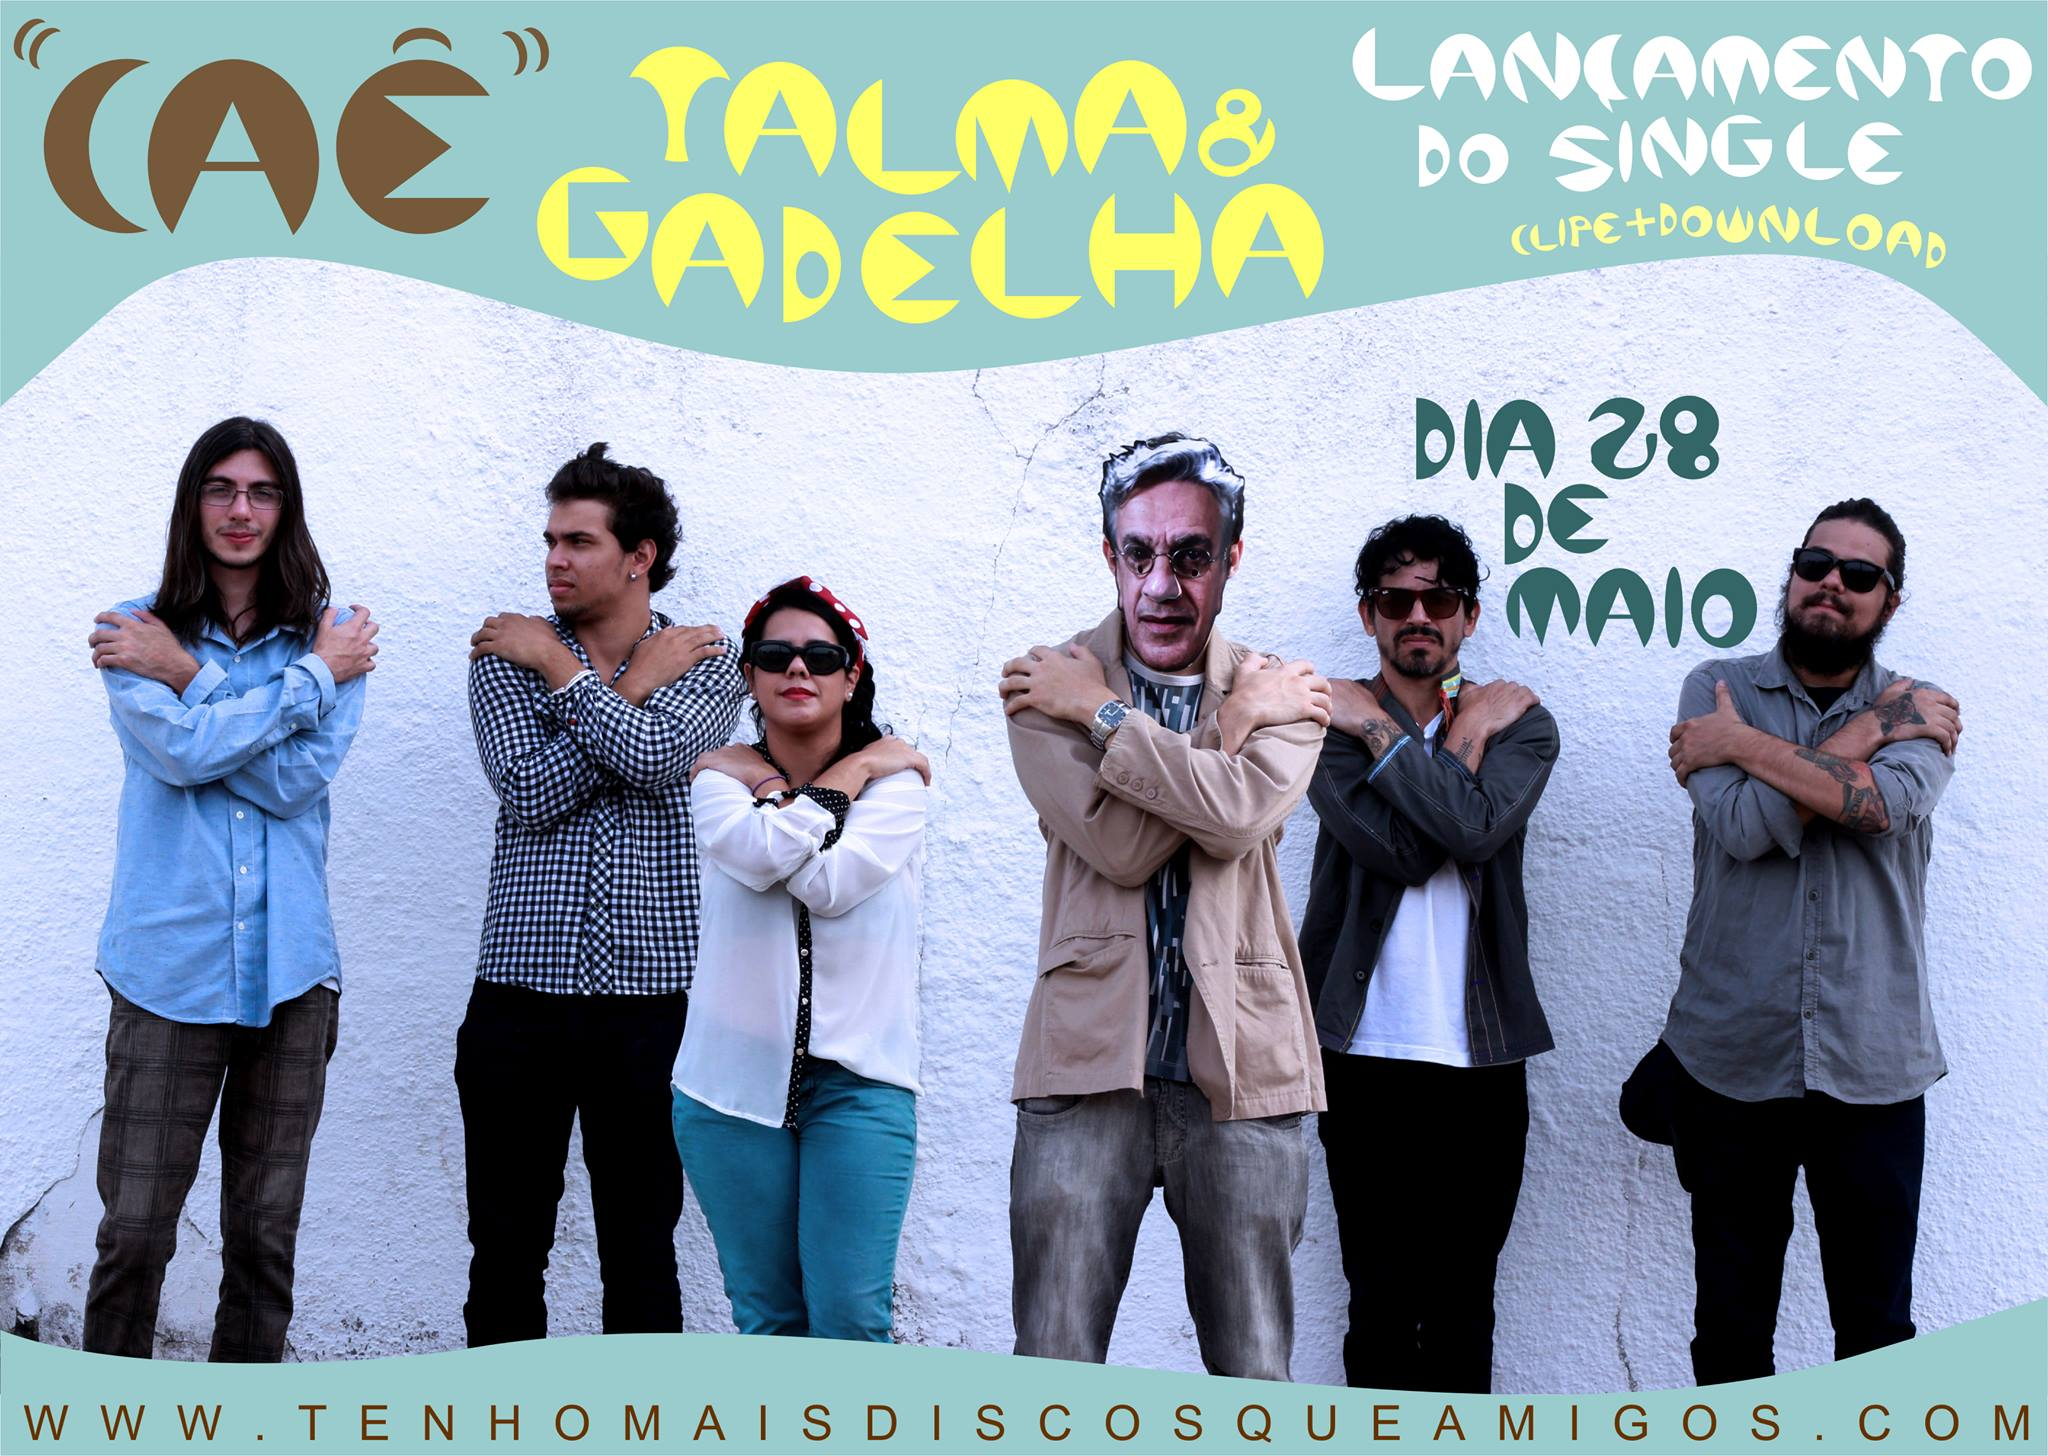 Exclusivo: Talma&Gadelha -